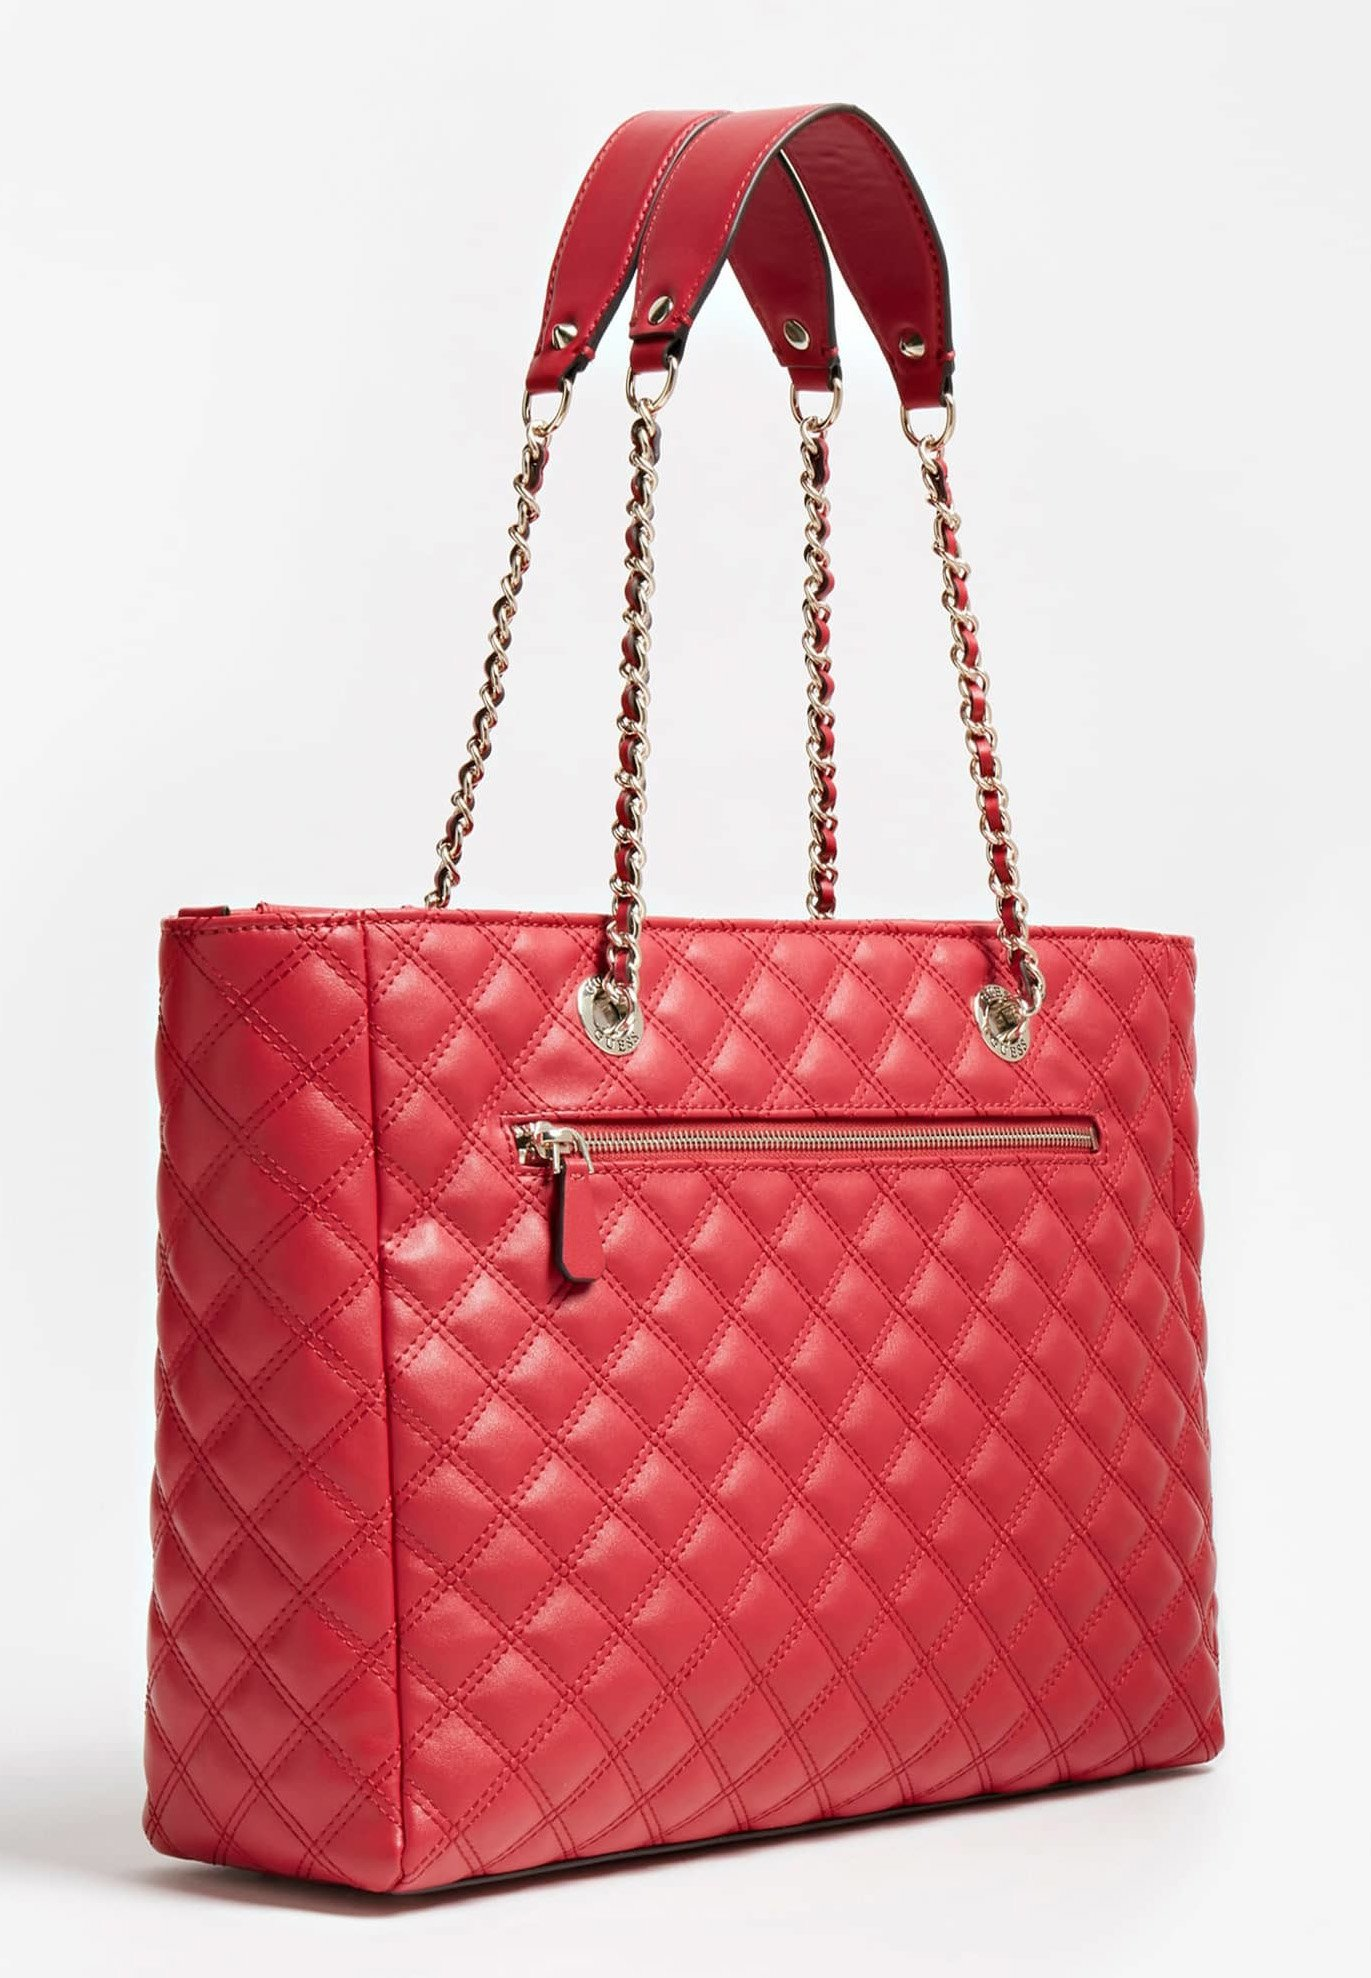 Guess Cessily - Handtasche Rot